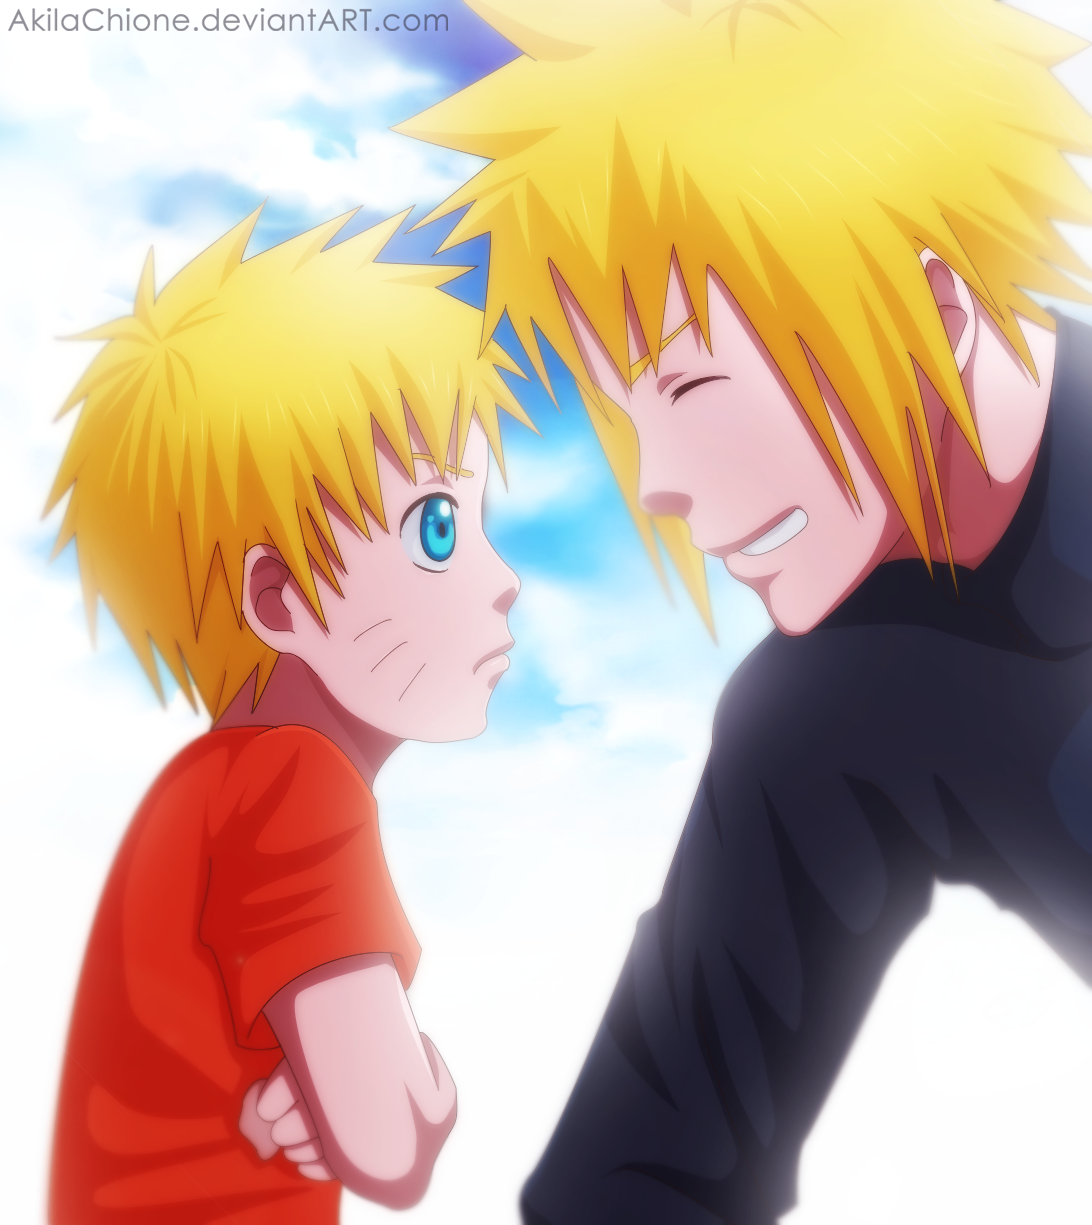 Anime News New Naruto Anime Movie Featuring Naruto S: Father & Son – Minato & Naruto